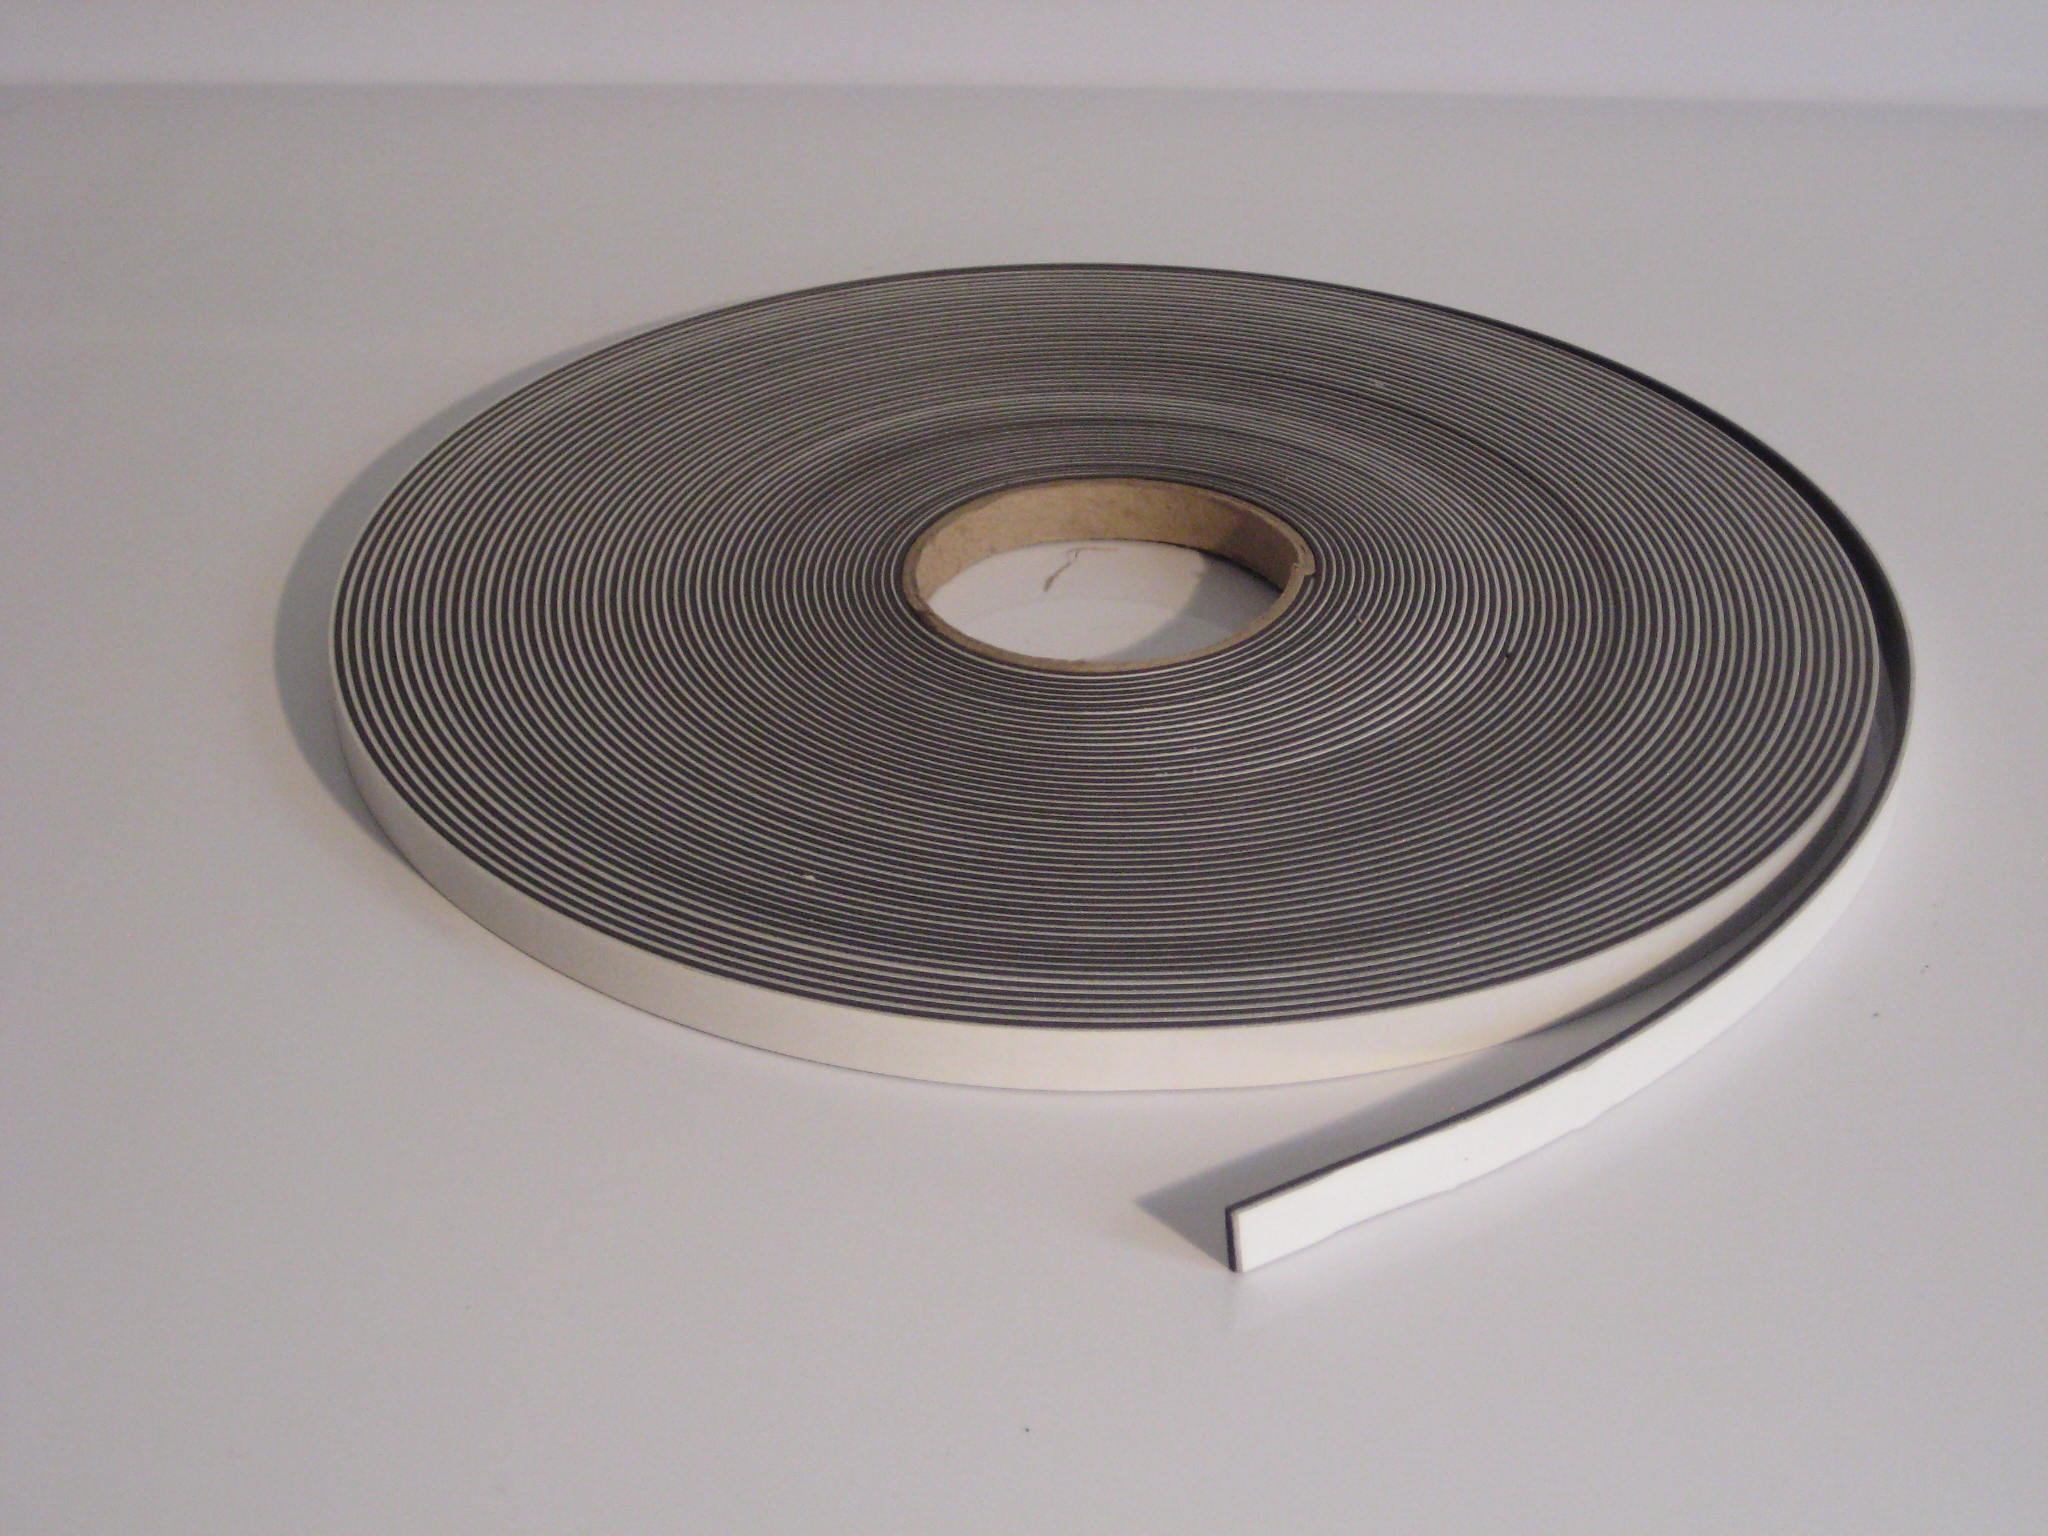 12 7mm X 1 5mm Foam Self Adhesive Magnetic Tape Type A